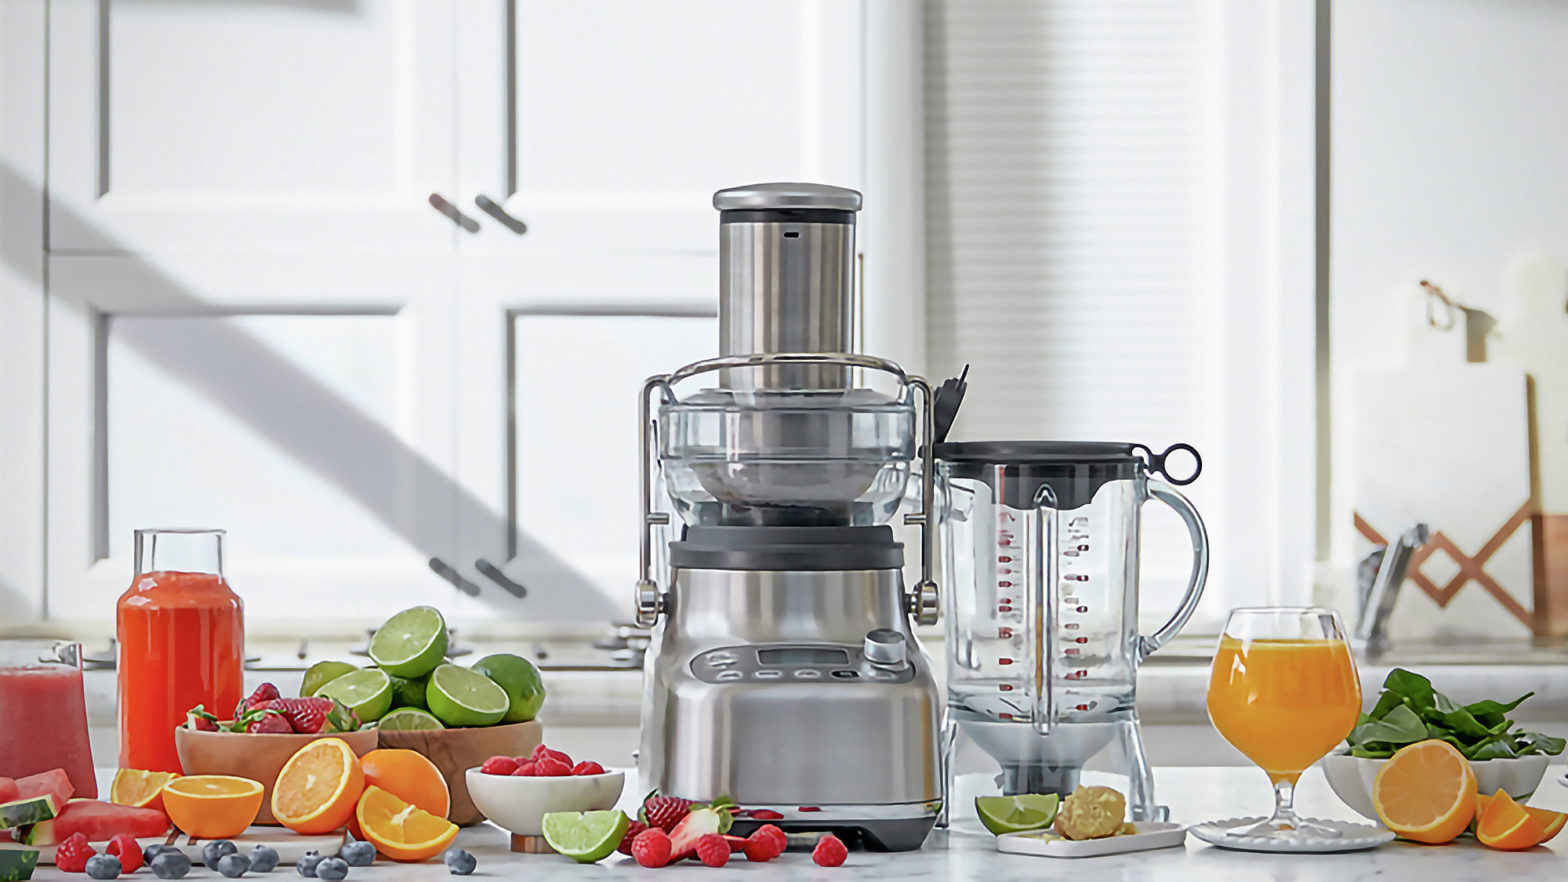 Breville 3X Bluicer Pro Juicer and Blender